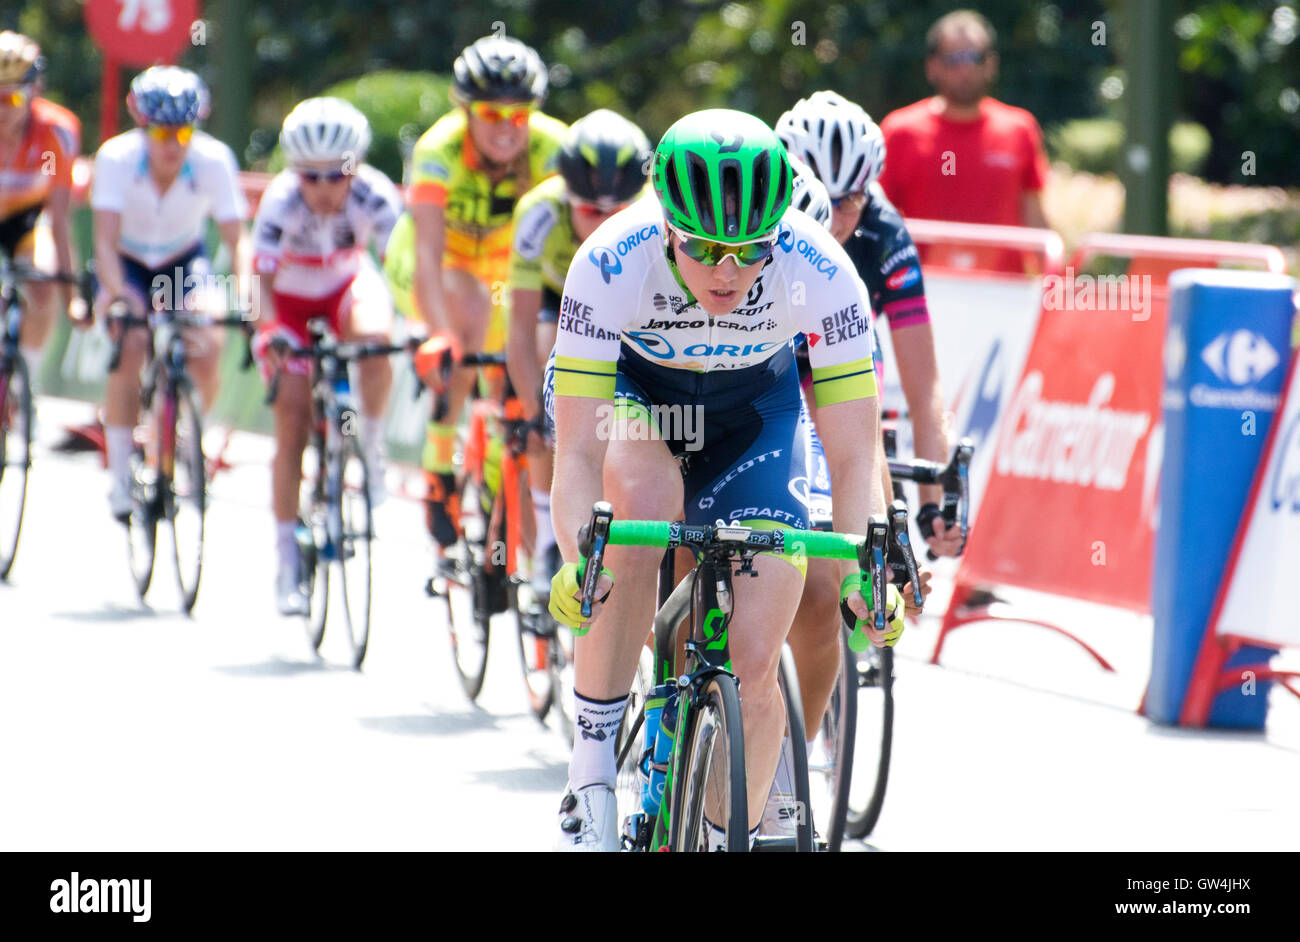 Madrid, Spain. 11th September, 2016. A cyclist of 'Orica-AIS' during the one-day race of UCI Women's World Tour Stock Photo